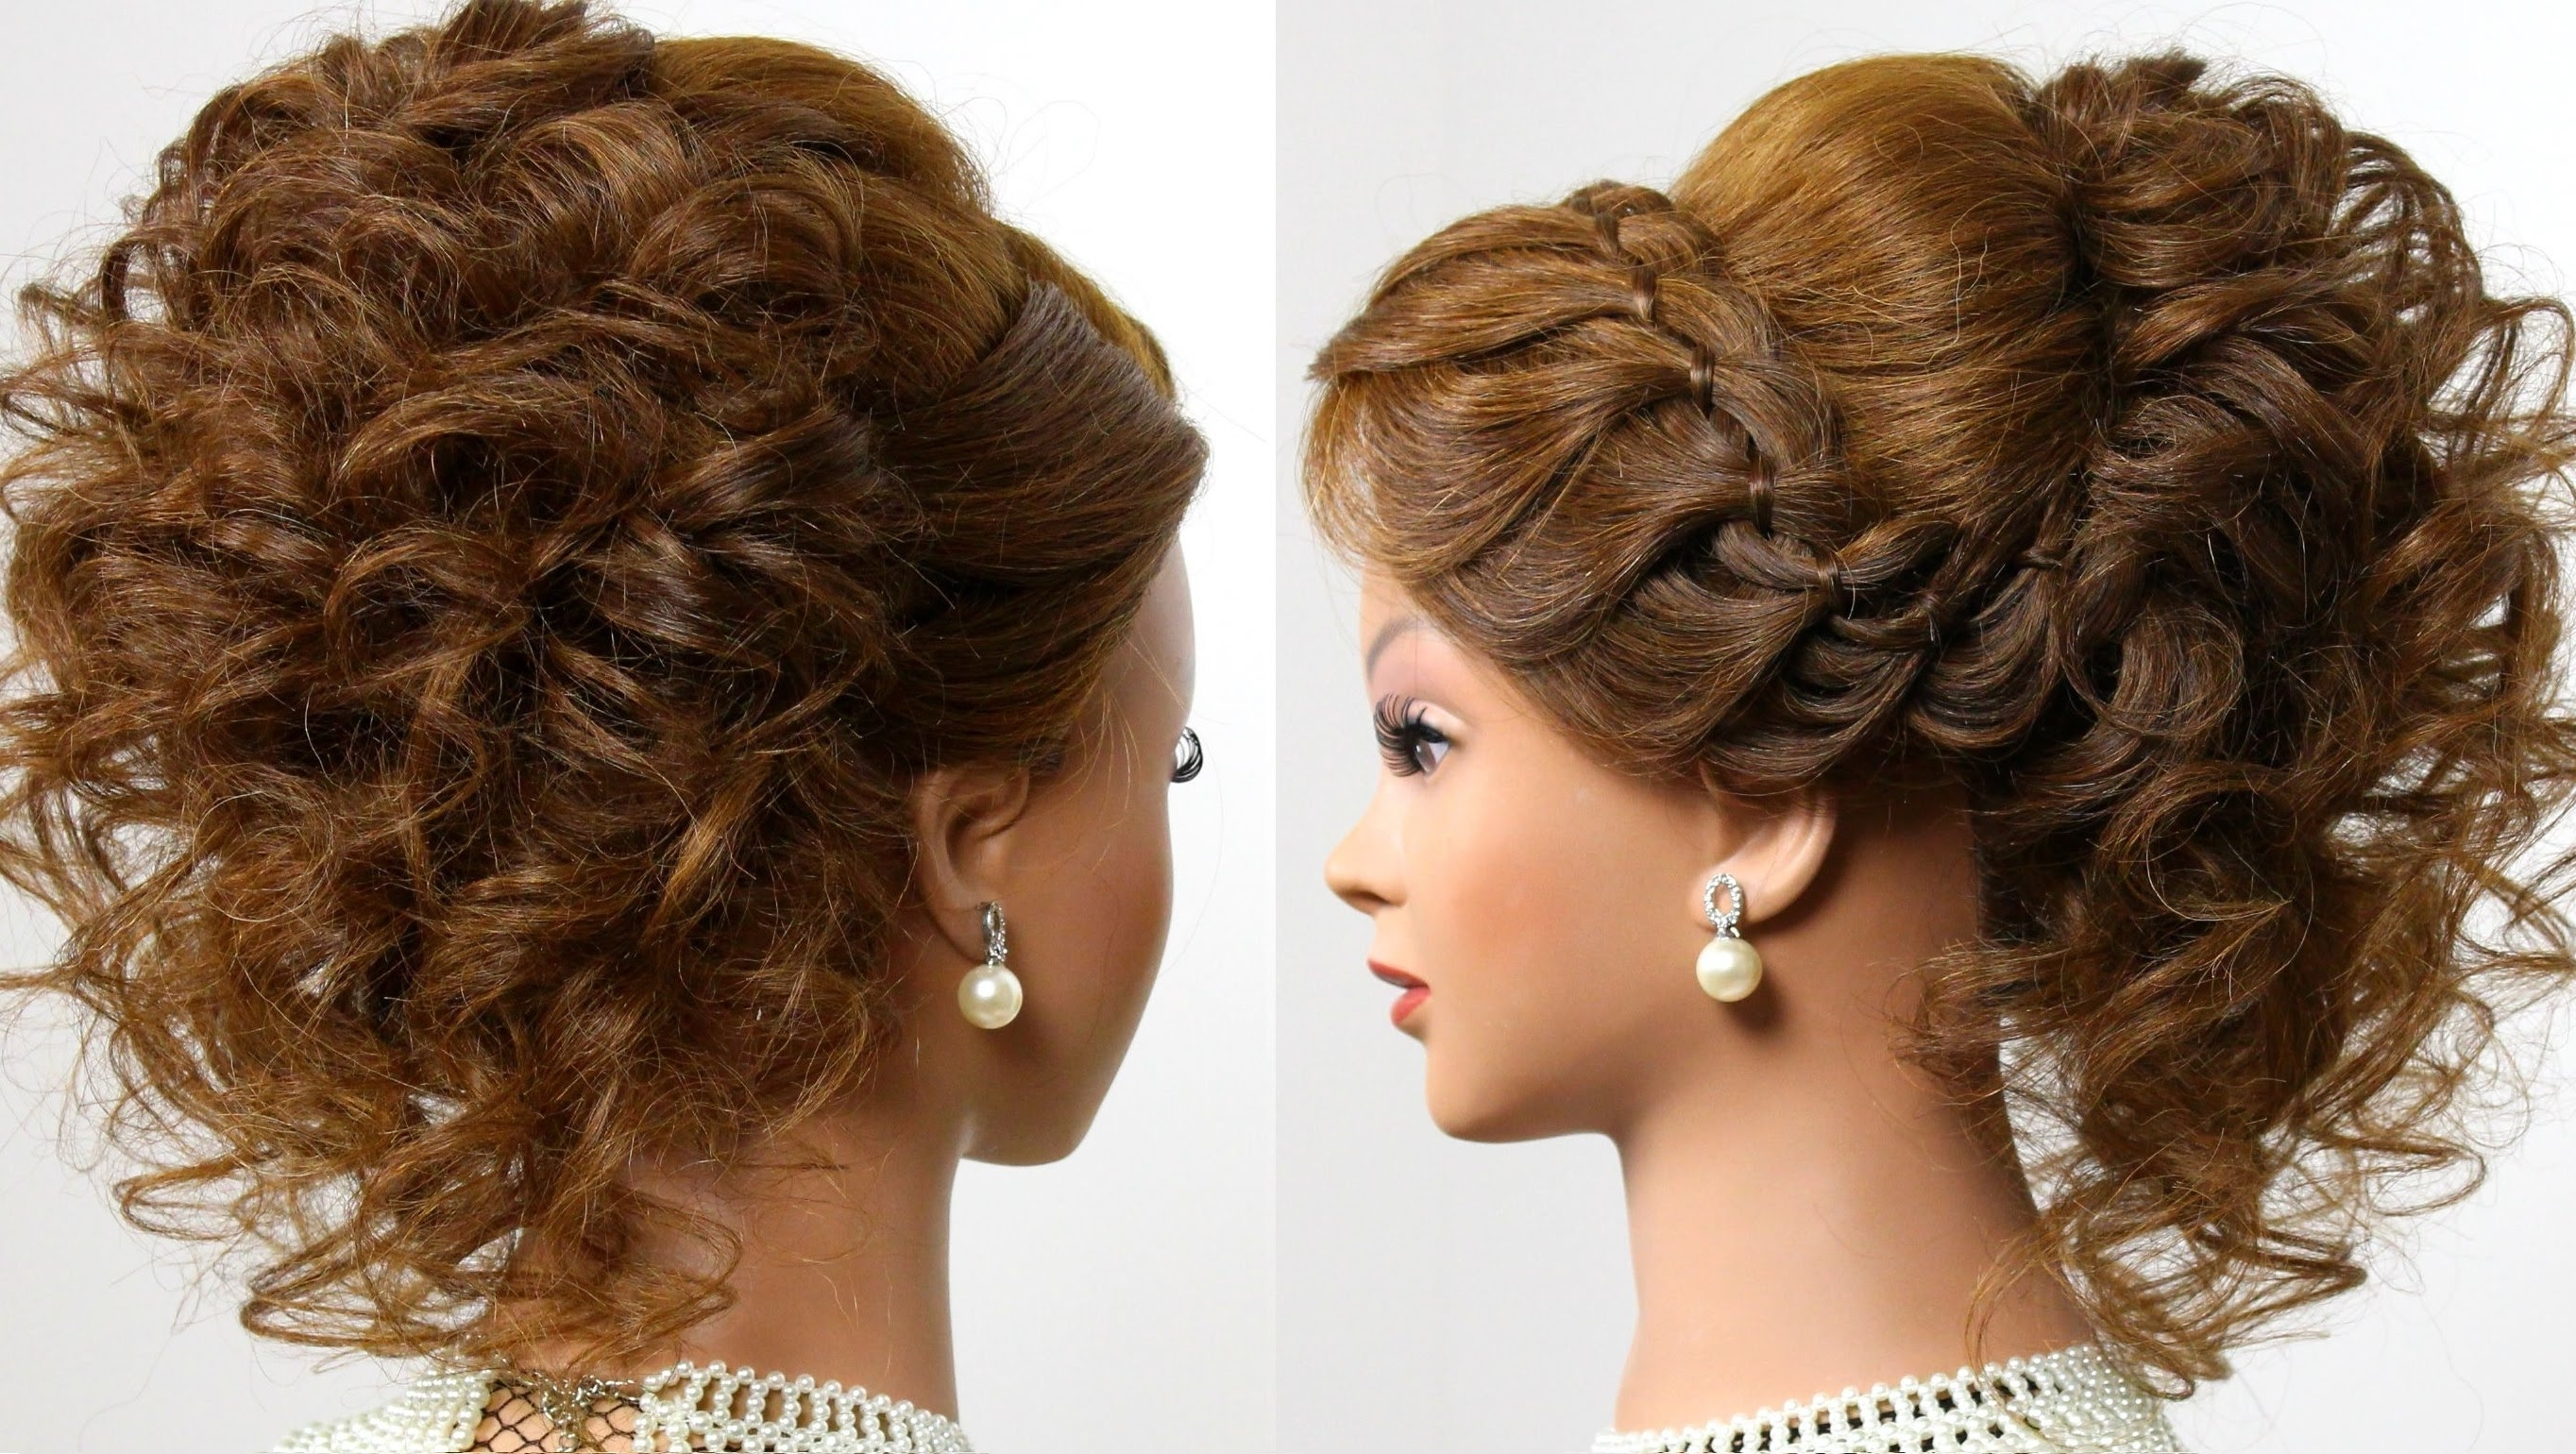 Curly Wedding Prom Hairstyle For Long Hair Sensational Romantic Pertaining To Updo Hairstyles For Wavy Medium Length Hair (View 2 of 15)